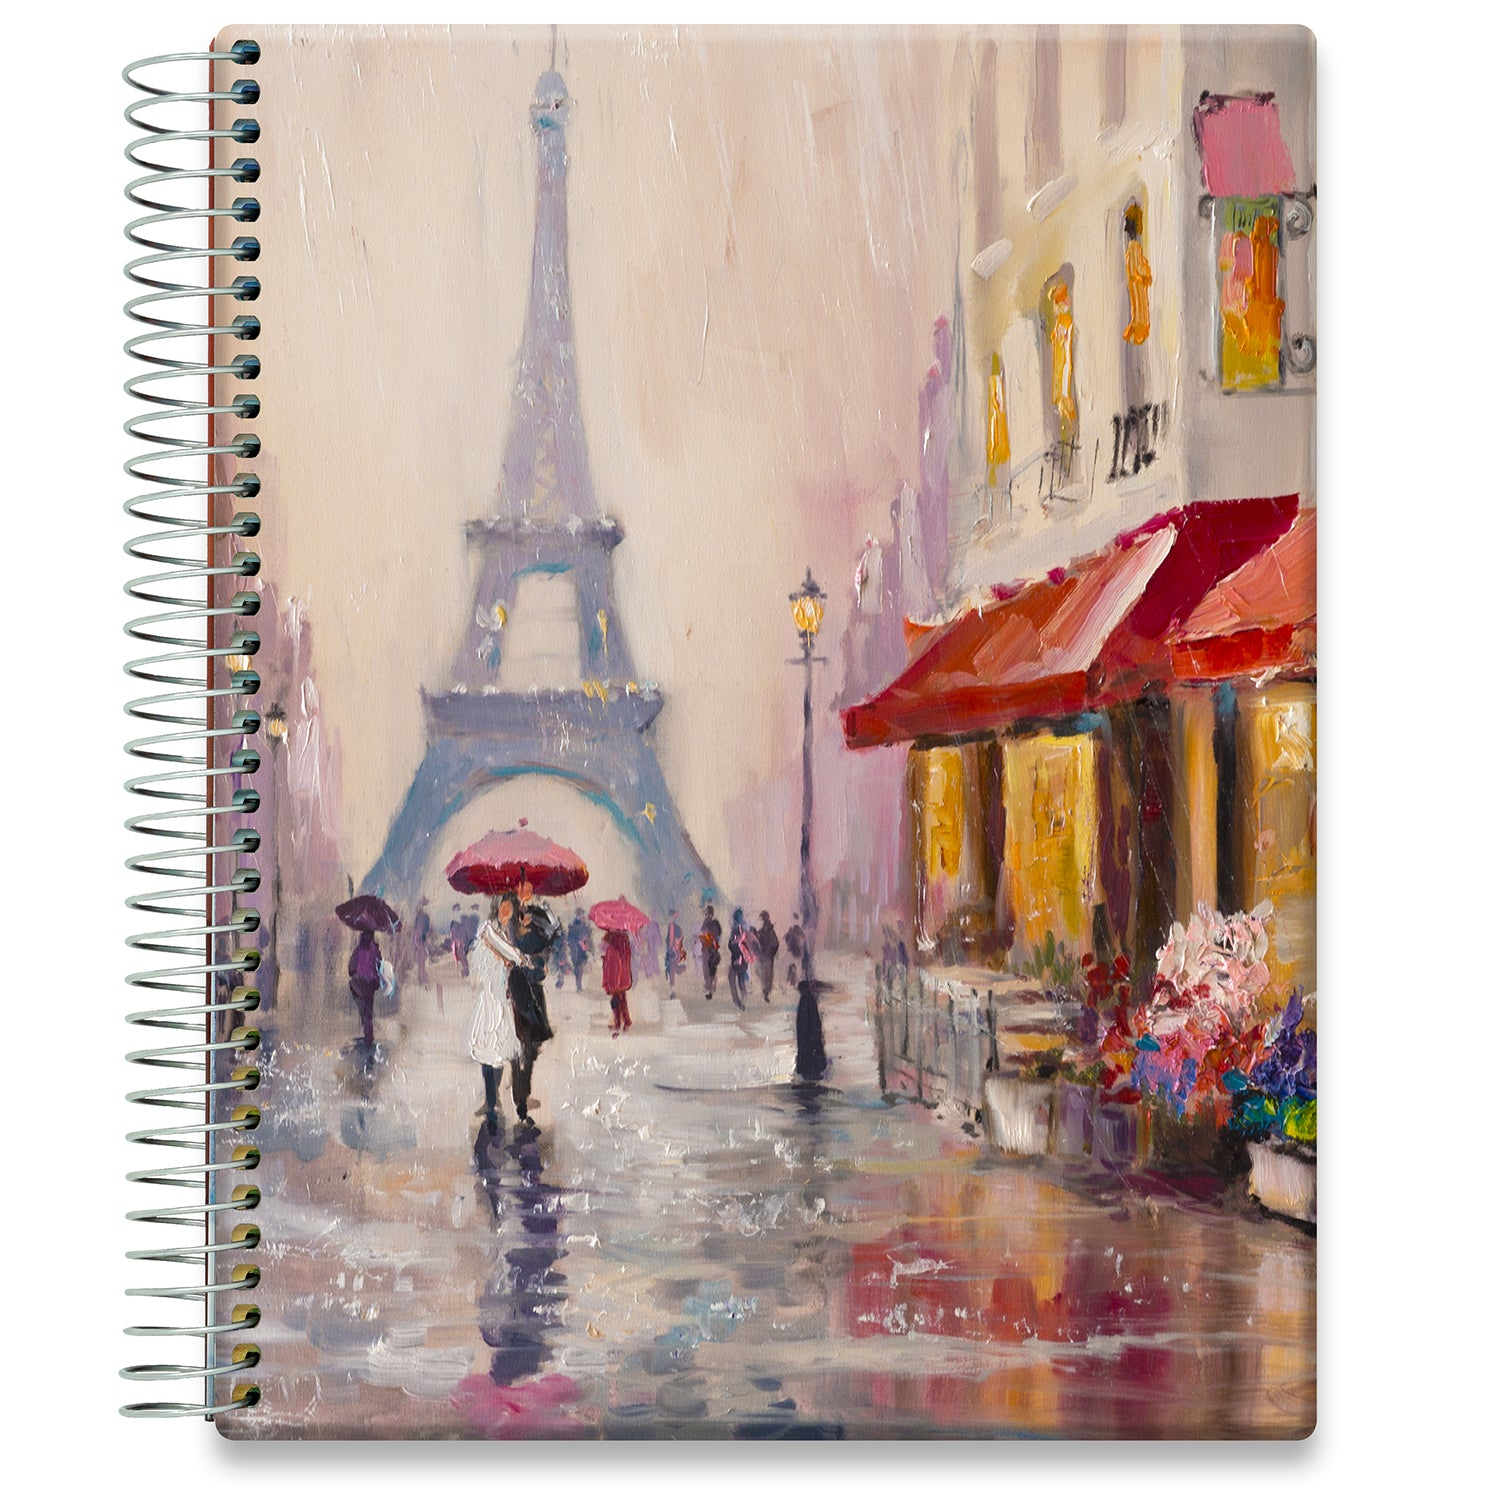 Planner 2021-2022 • April 2021 to June 2022 Academic Year • 8.5x11 Hardcover • Couple in Paris